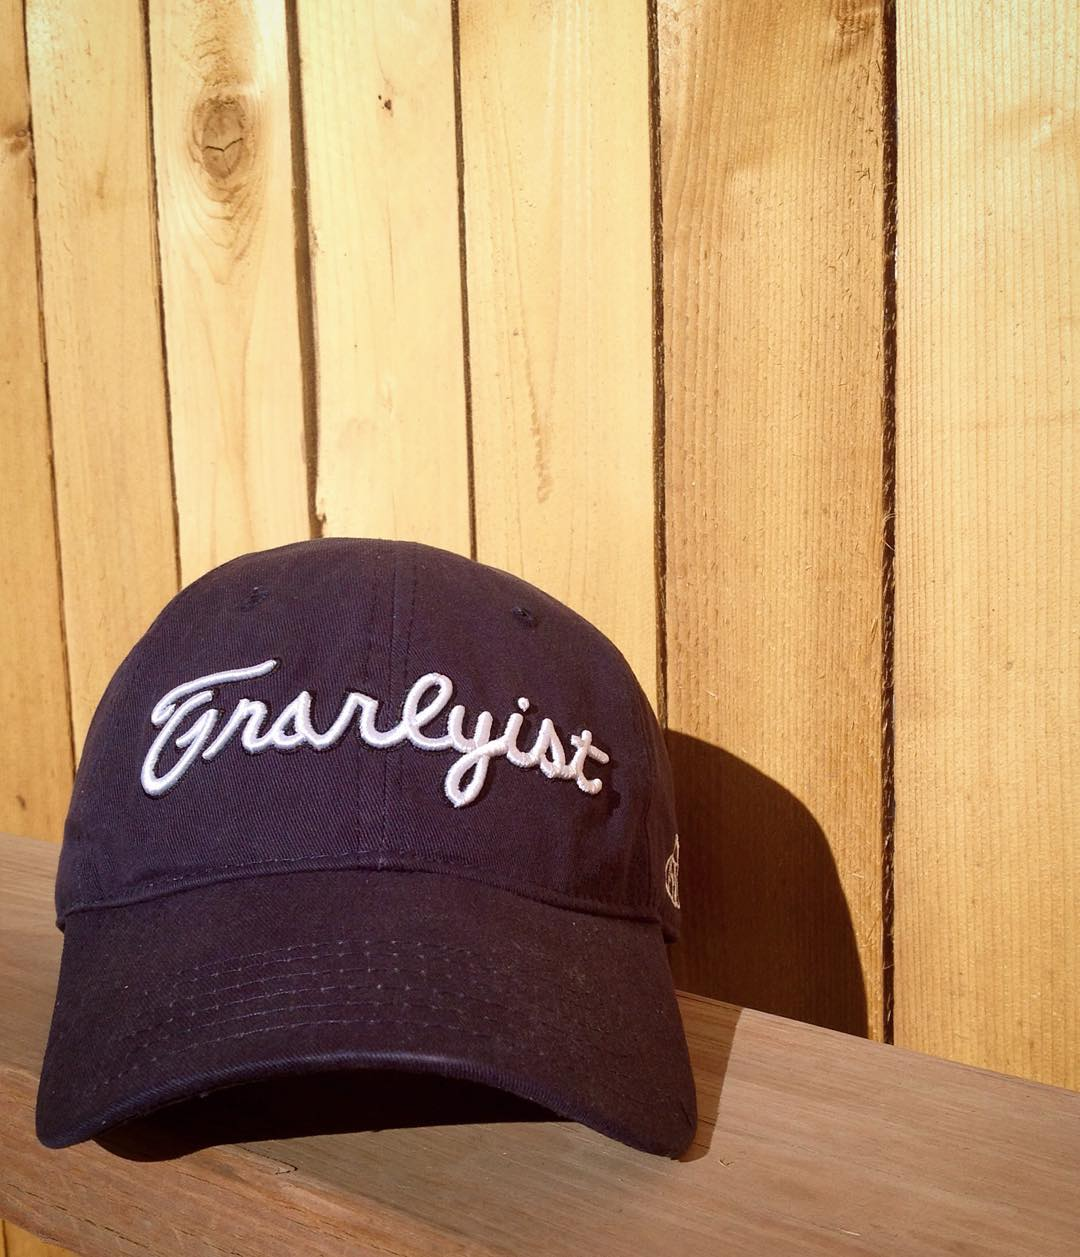 "Introducing, the BEST Dad present EVER!! Is your Dad rad, but a little less than stylish? Well, as fellow Gnarlyists we got your back this Holiday season. Finally get your pops something cool that he will ACTUALLY wear!! The ""Gnarlyist Adjustable Hat""..."